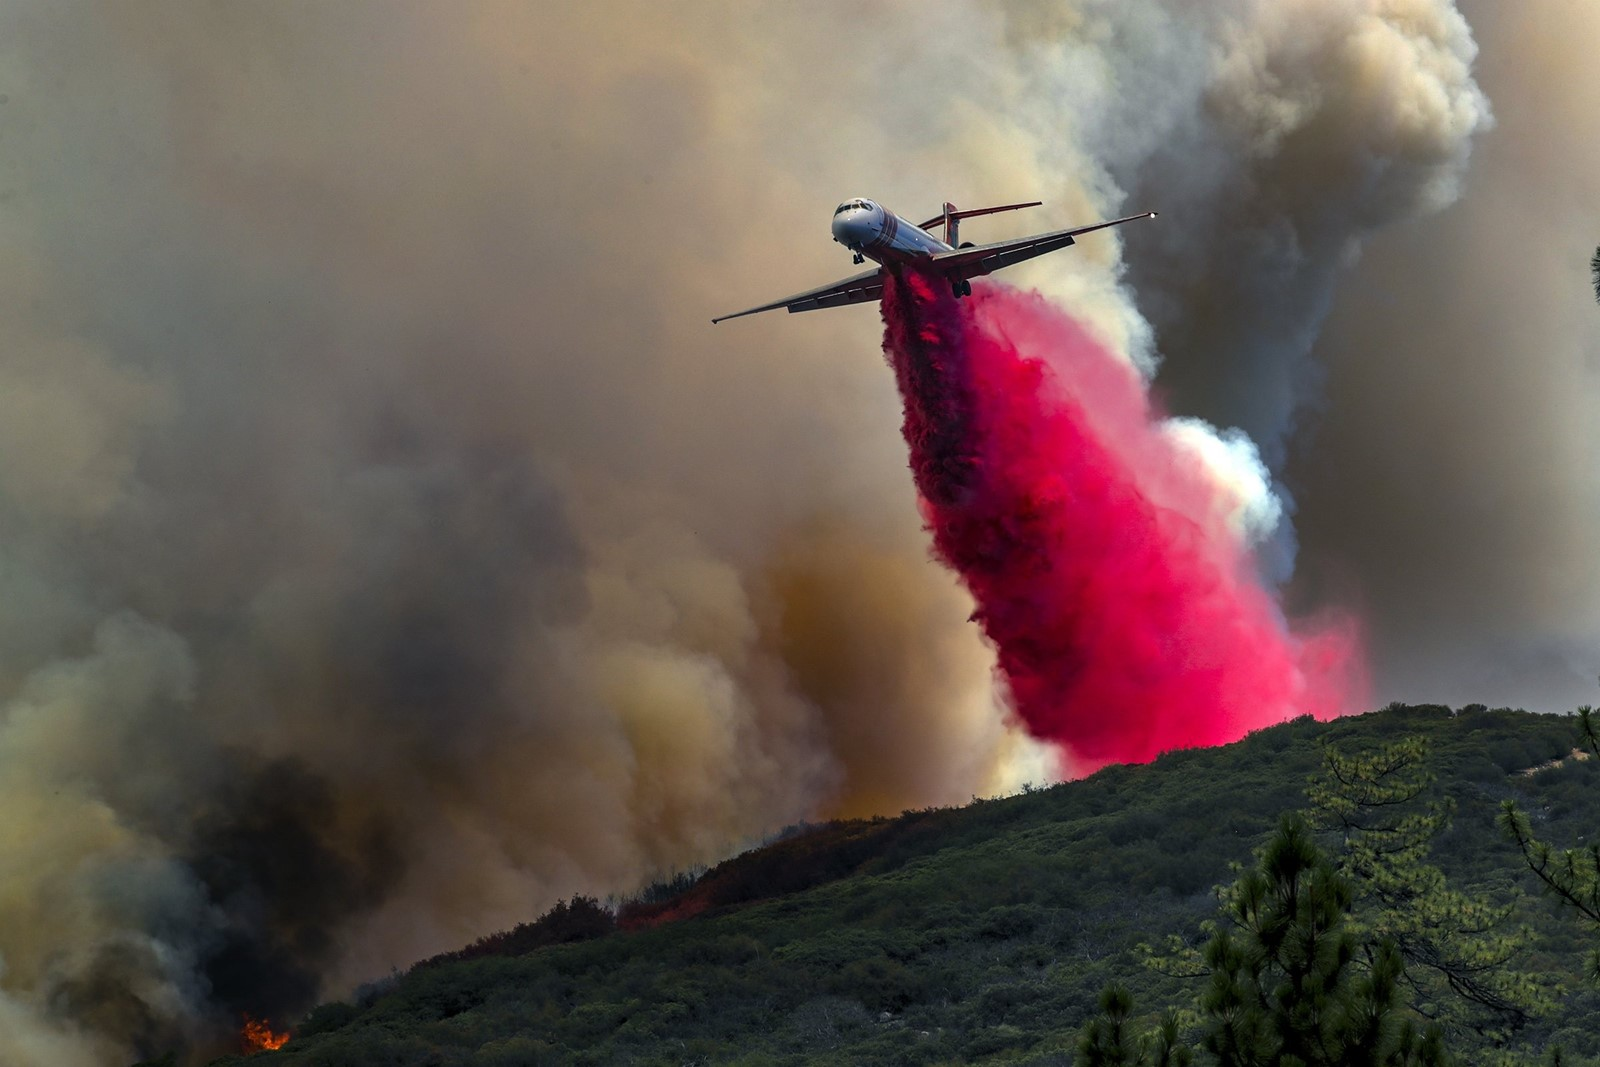 A plane, seen from Highway 74, drops retardant on the Cranston fire Thursday in Mountain Center. The fire was easily spotted by its billowy plumes of smoke. — Photograph: Irfan Khan/Los Angeles Times.